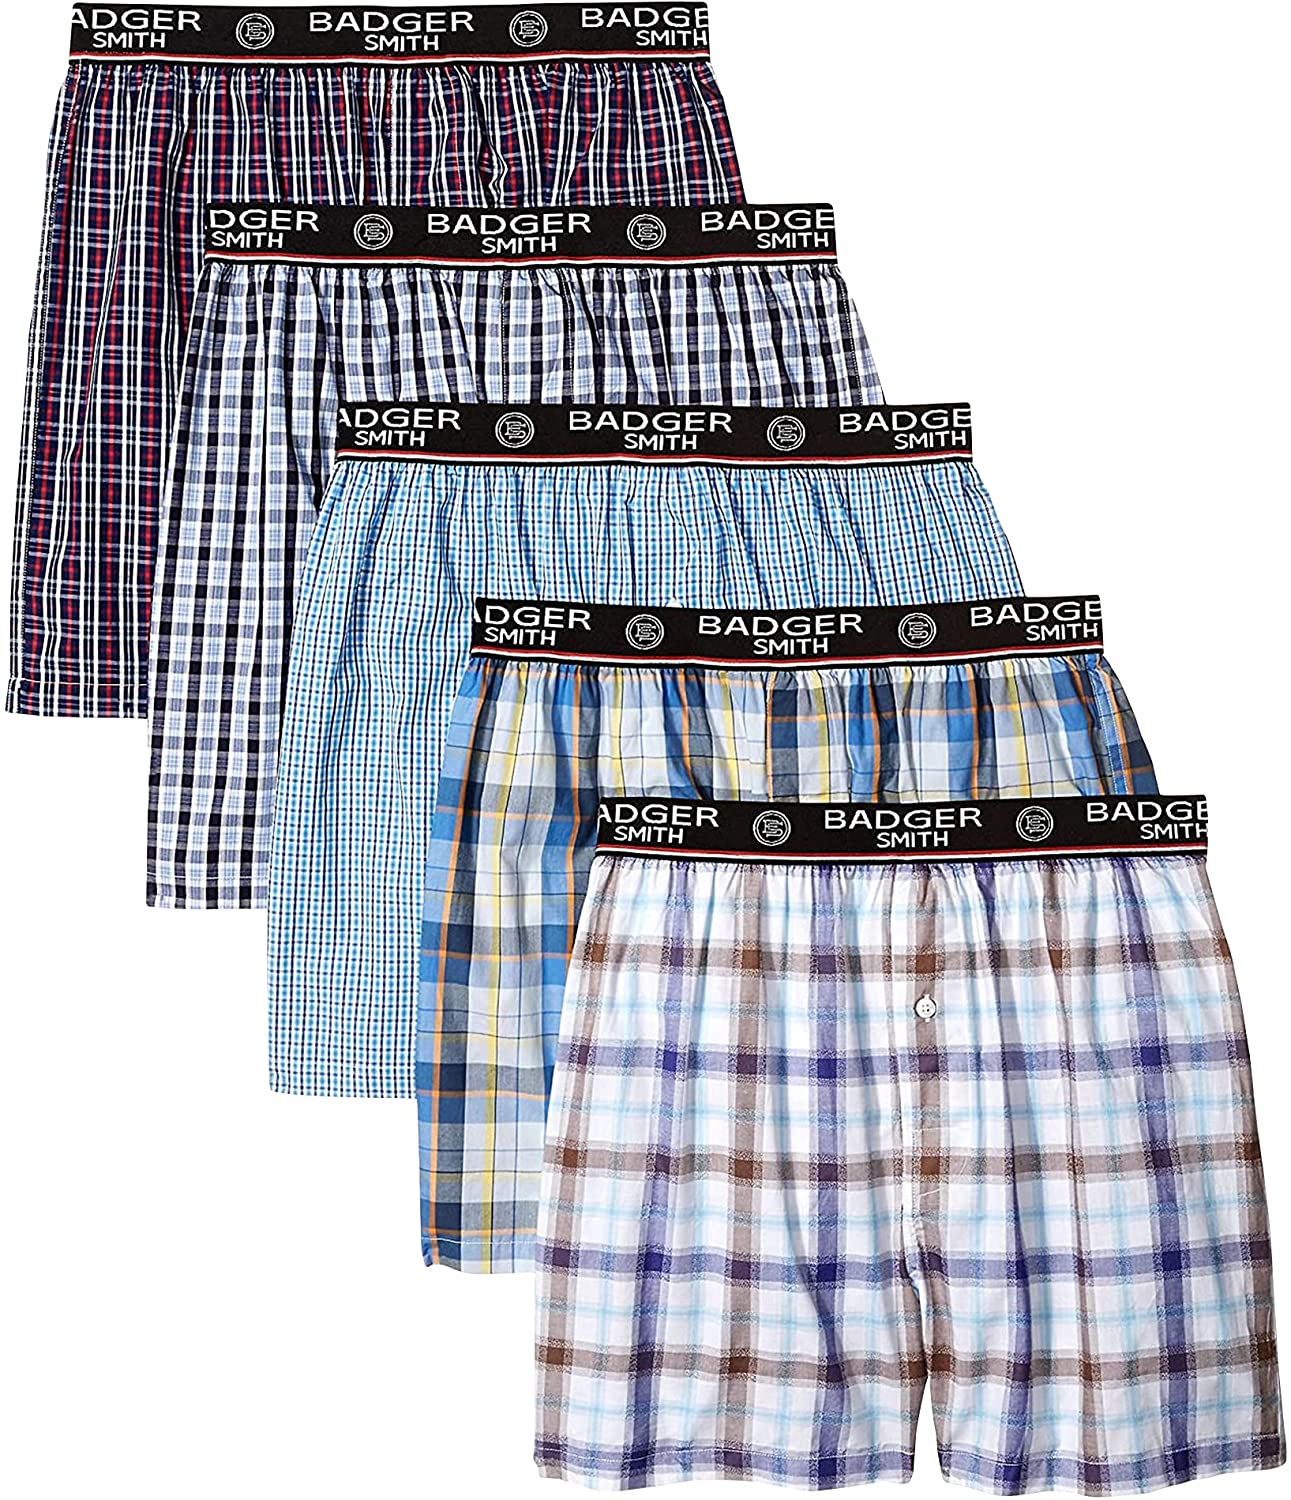 Badger Smith Men's OFFicial site 5 - Pack Mult 100% Surprise price and 3 Checks Cotton